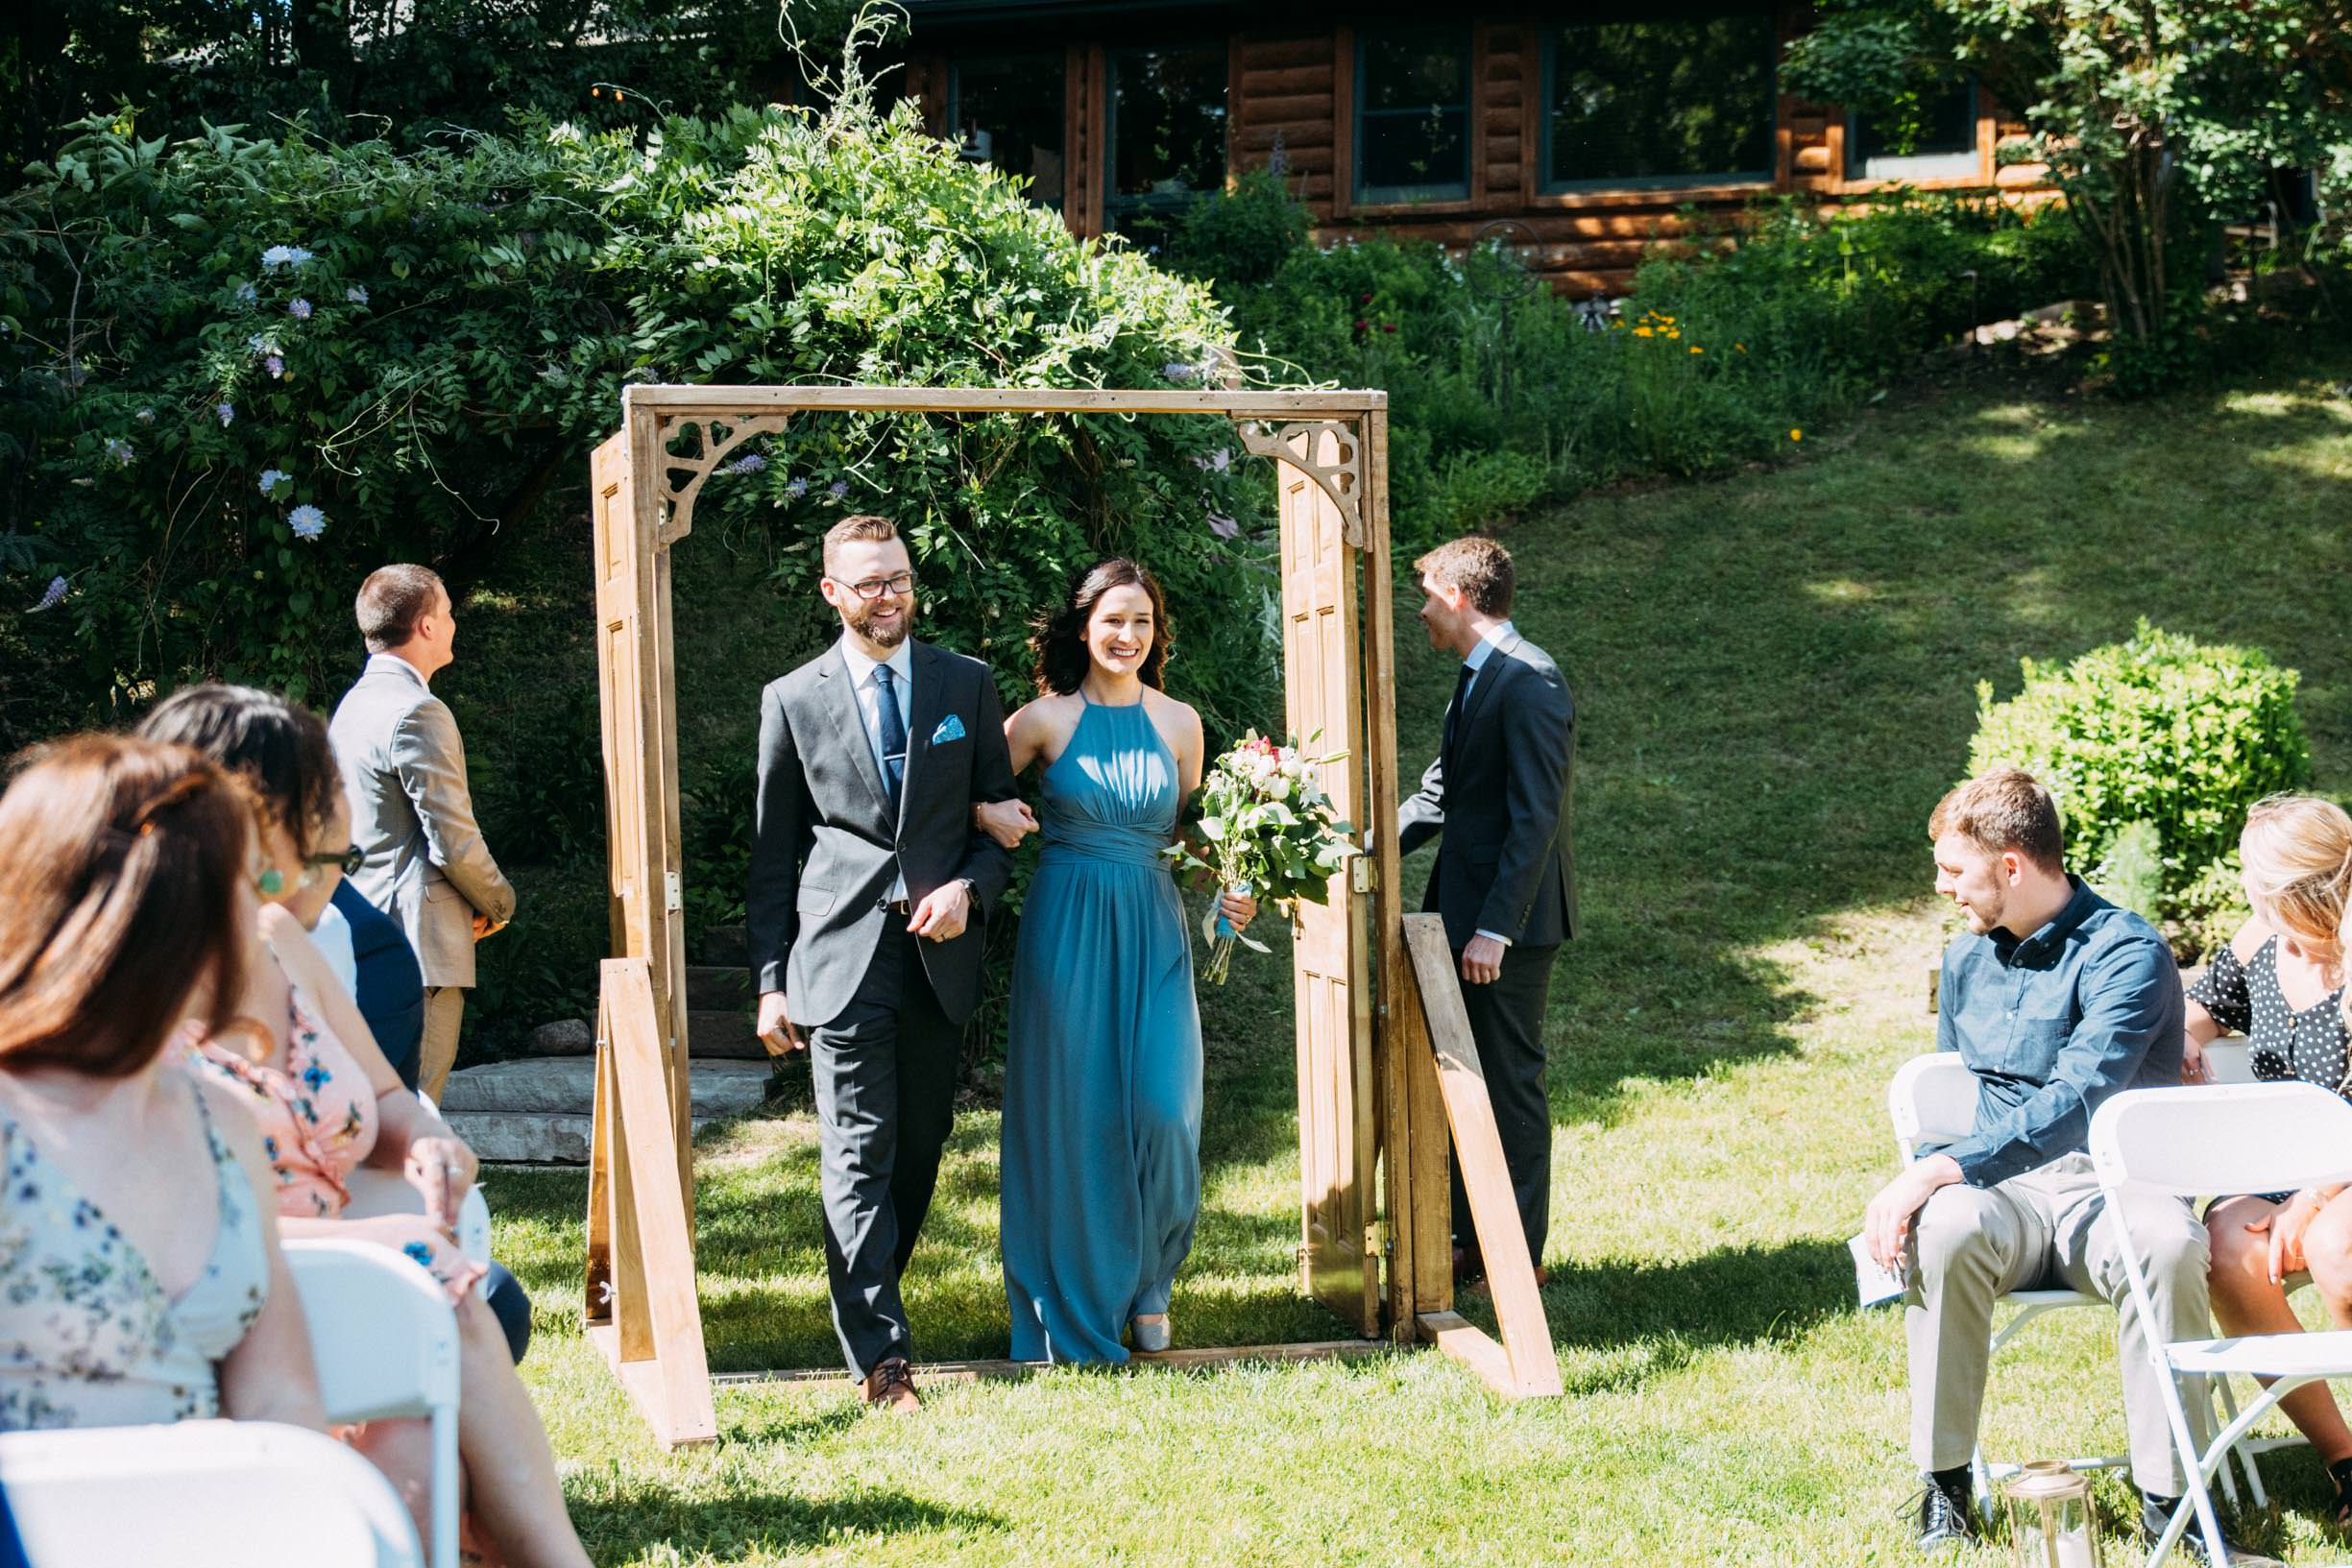 Carley_Trammell_GreenBay_Backyard_Wedding_Blog-56.jpg